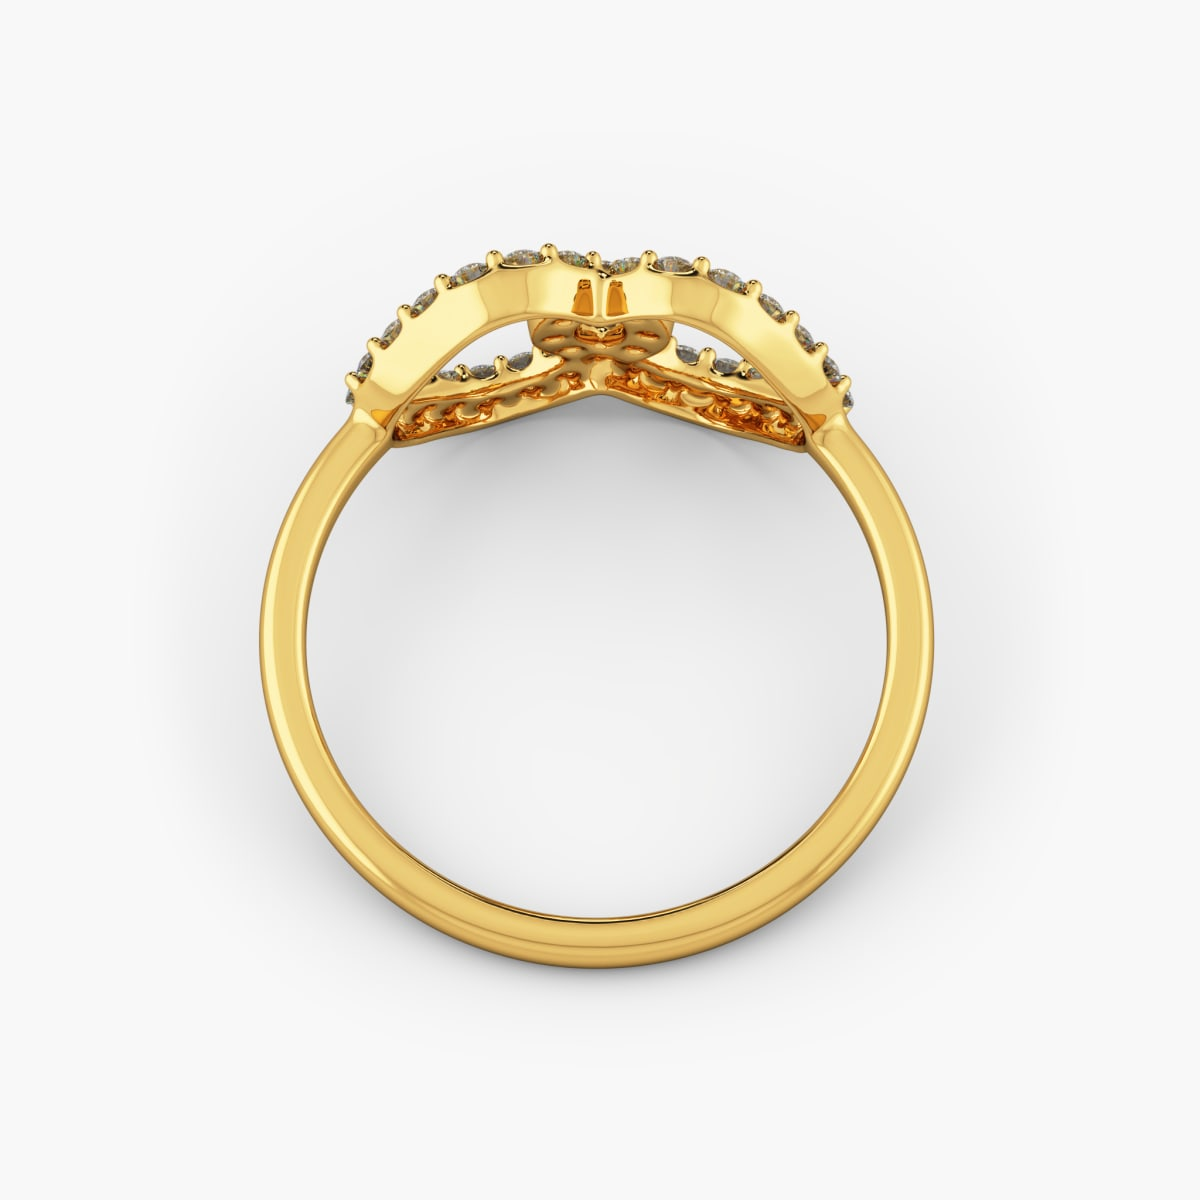 The Habitha Ring For Her